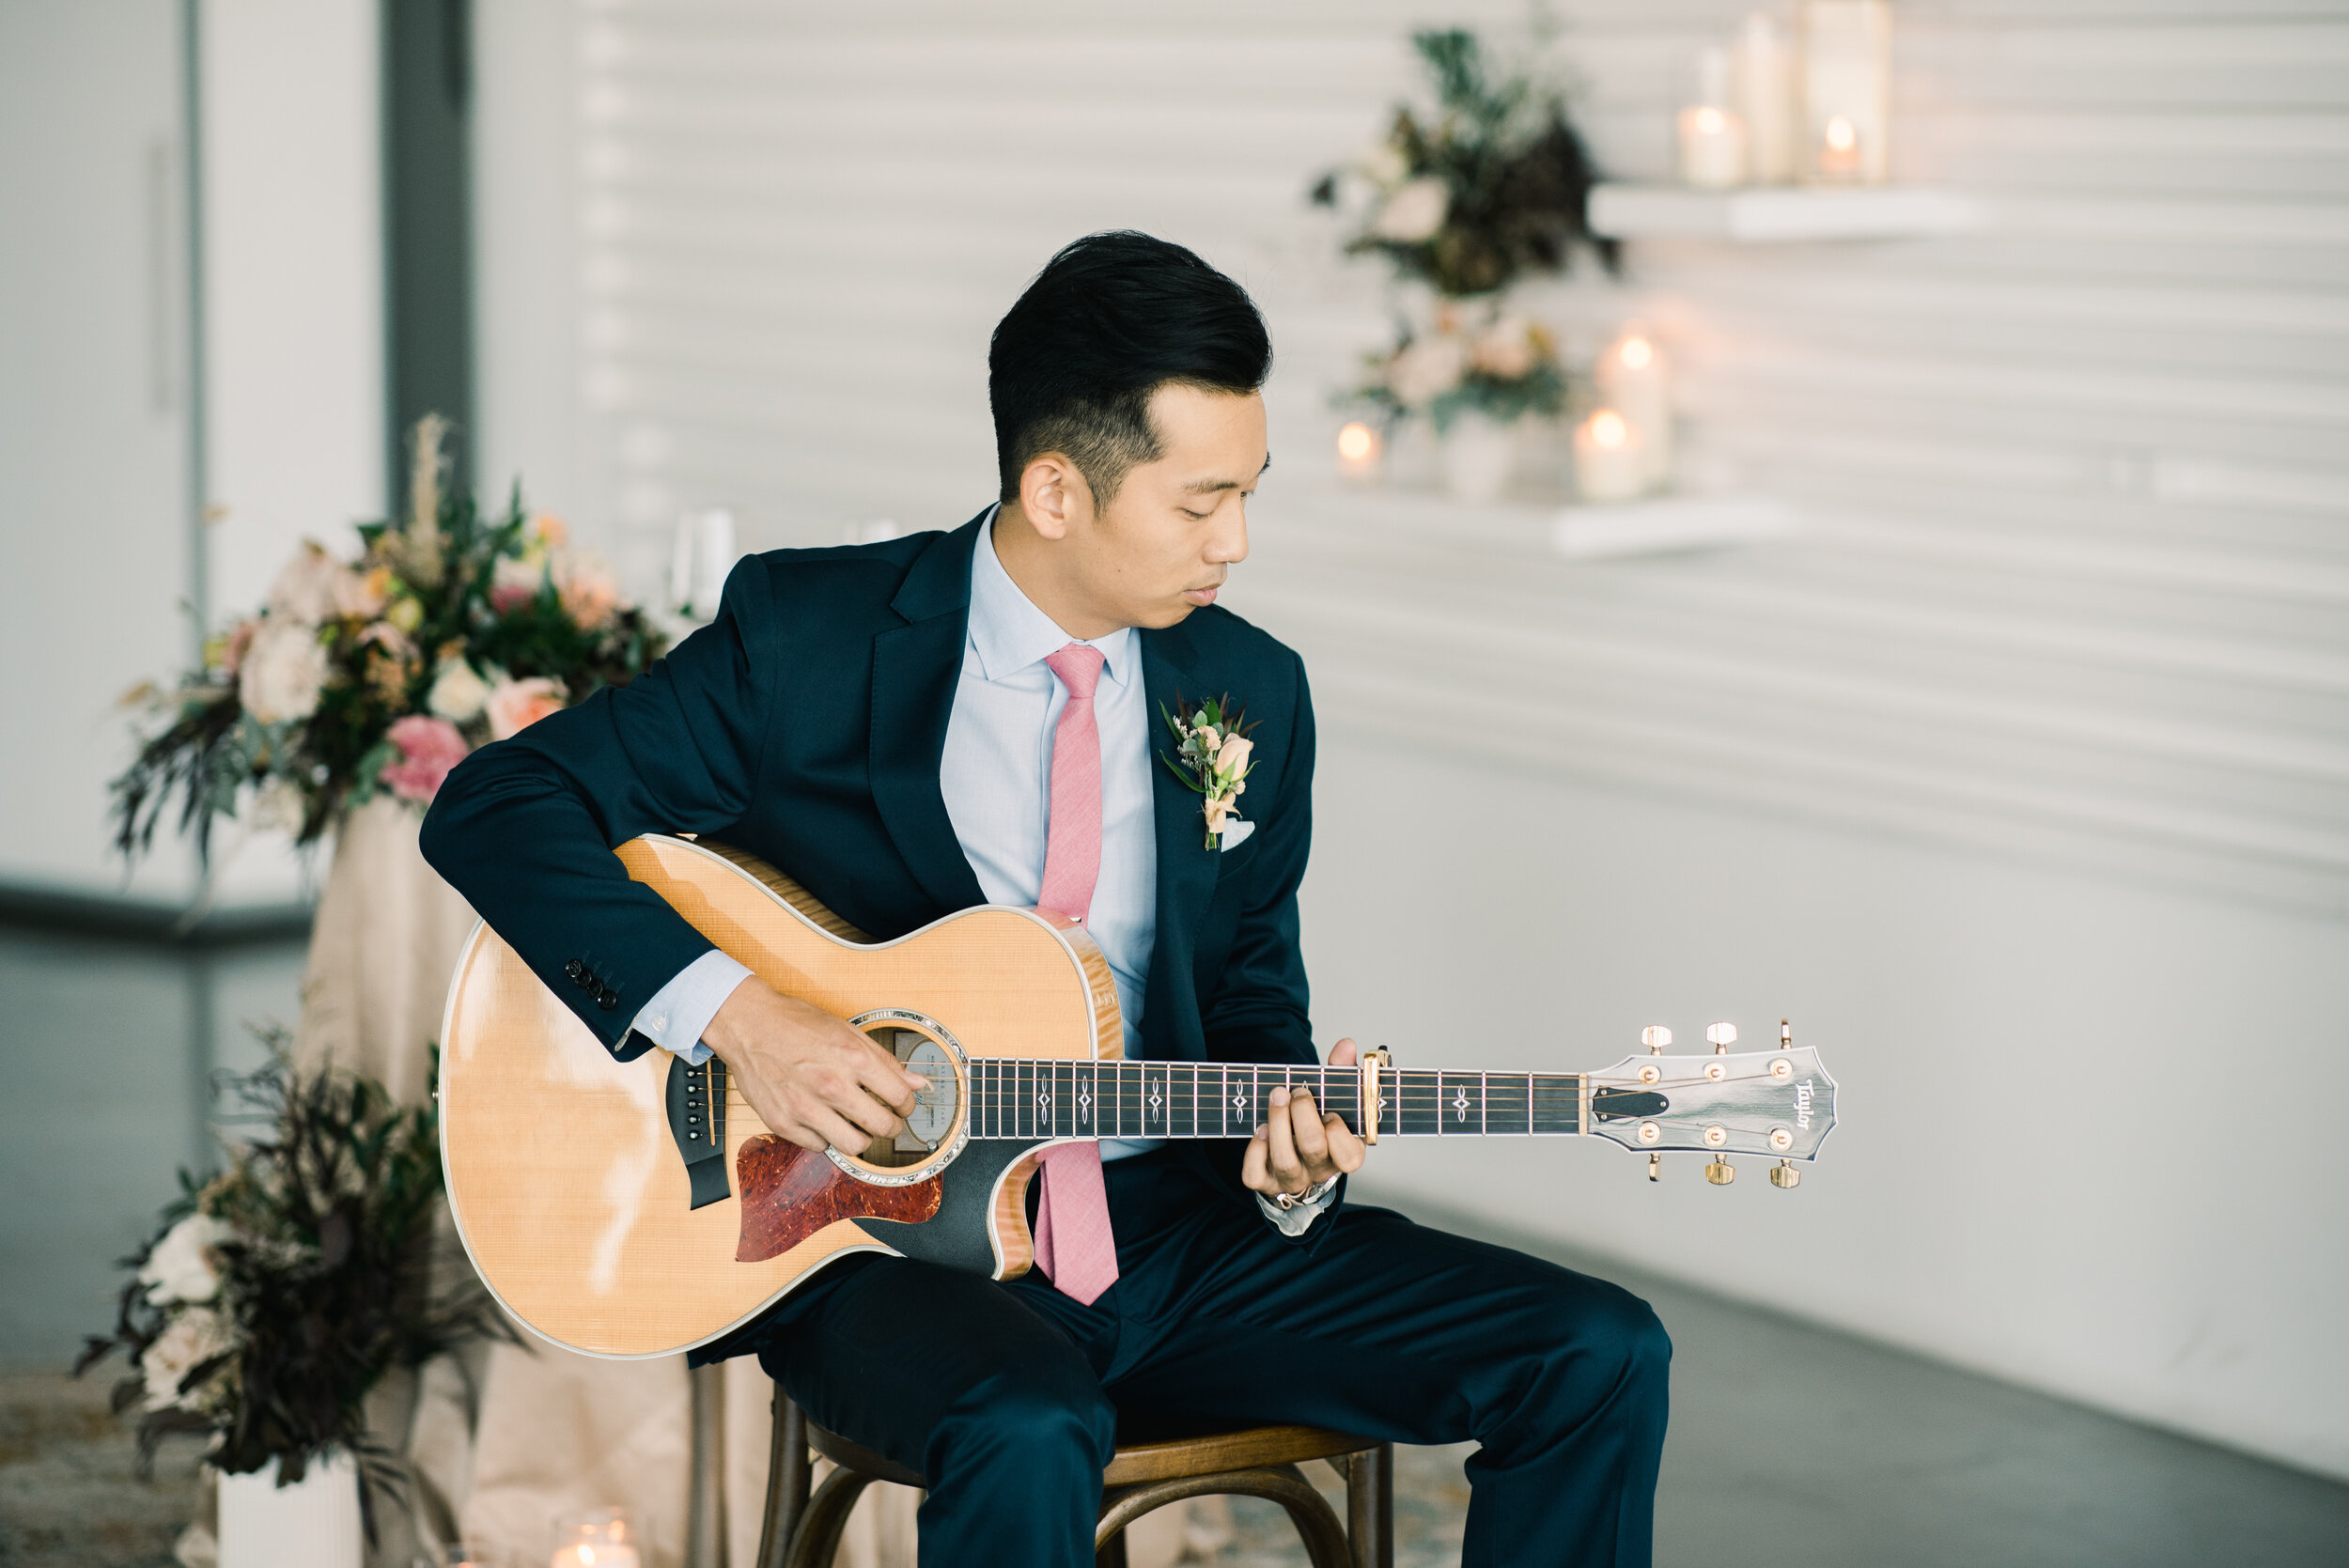 Weddings - Acoustic music as unique as your wedding day. Your friends will probably attend 6 weddings this year. I want them to remember yours.